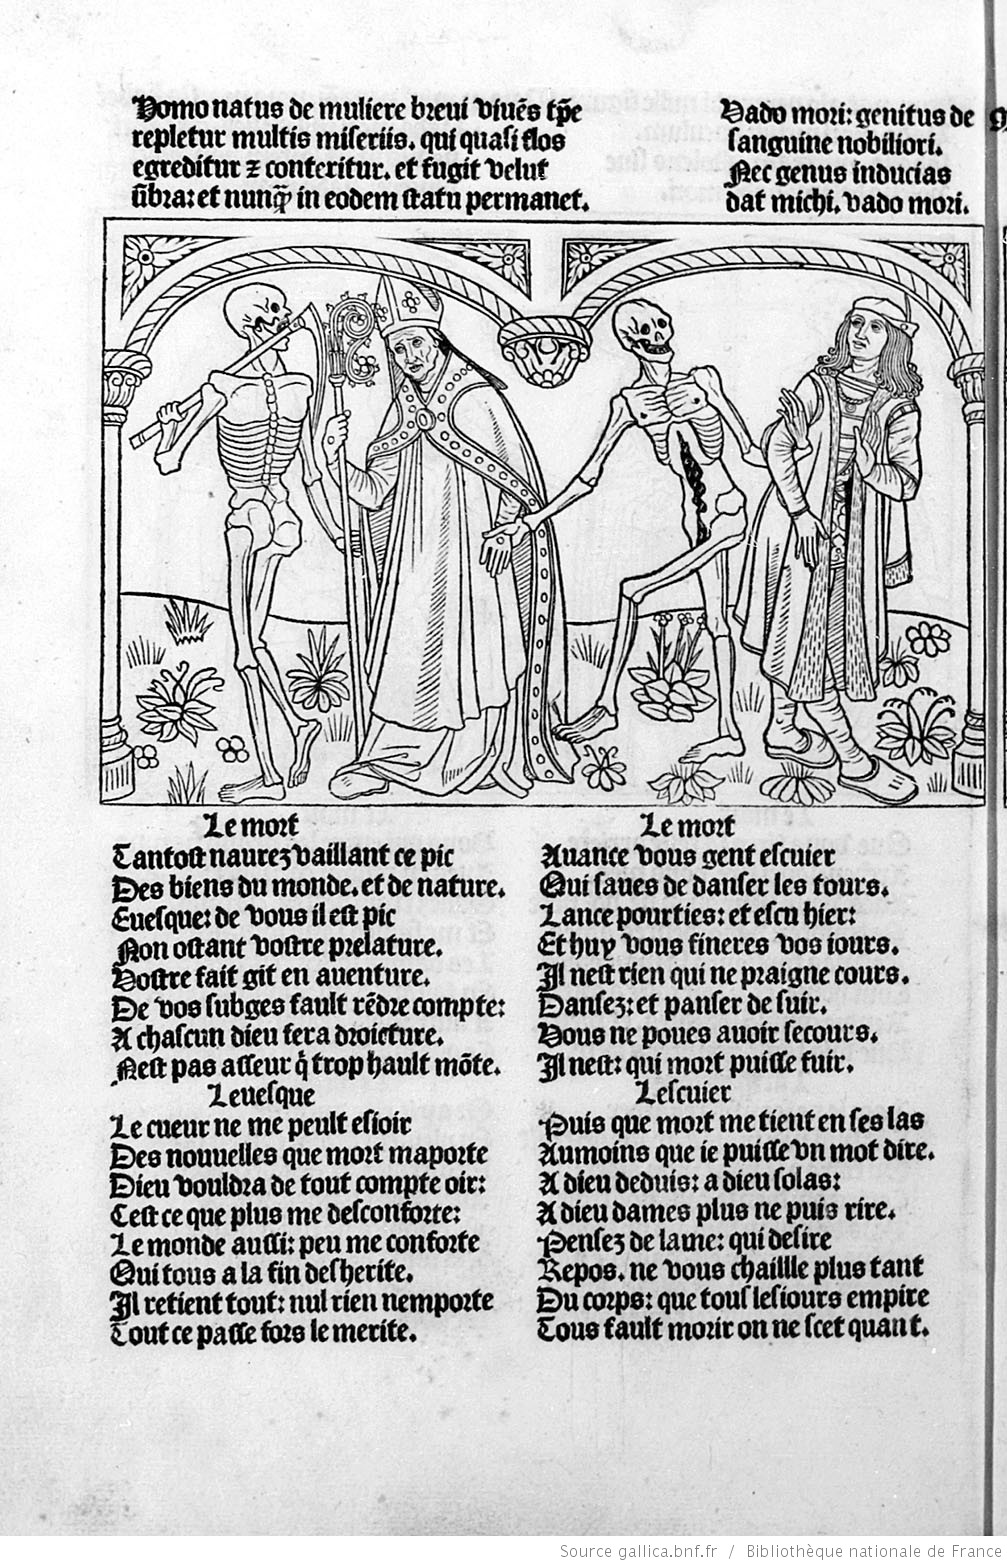 03. Guy Marchand. Danse Macabre, 1486.